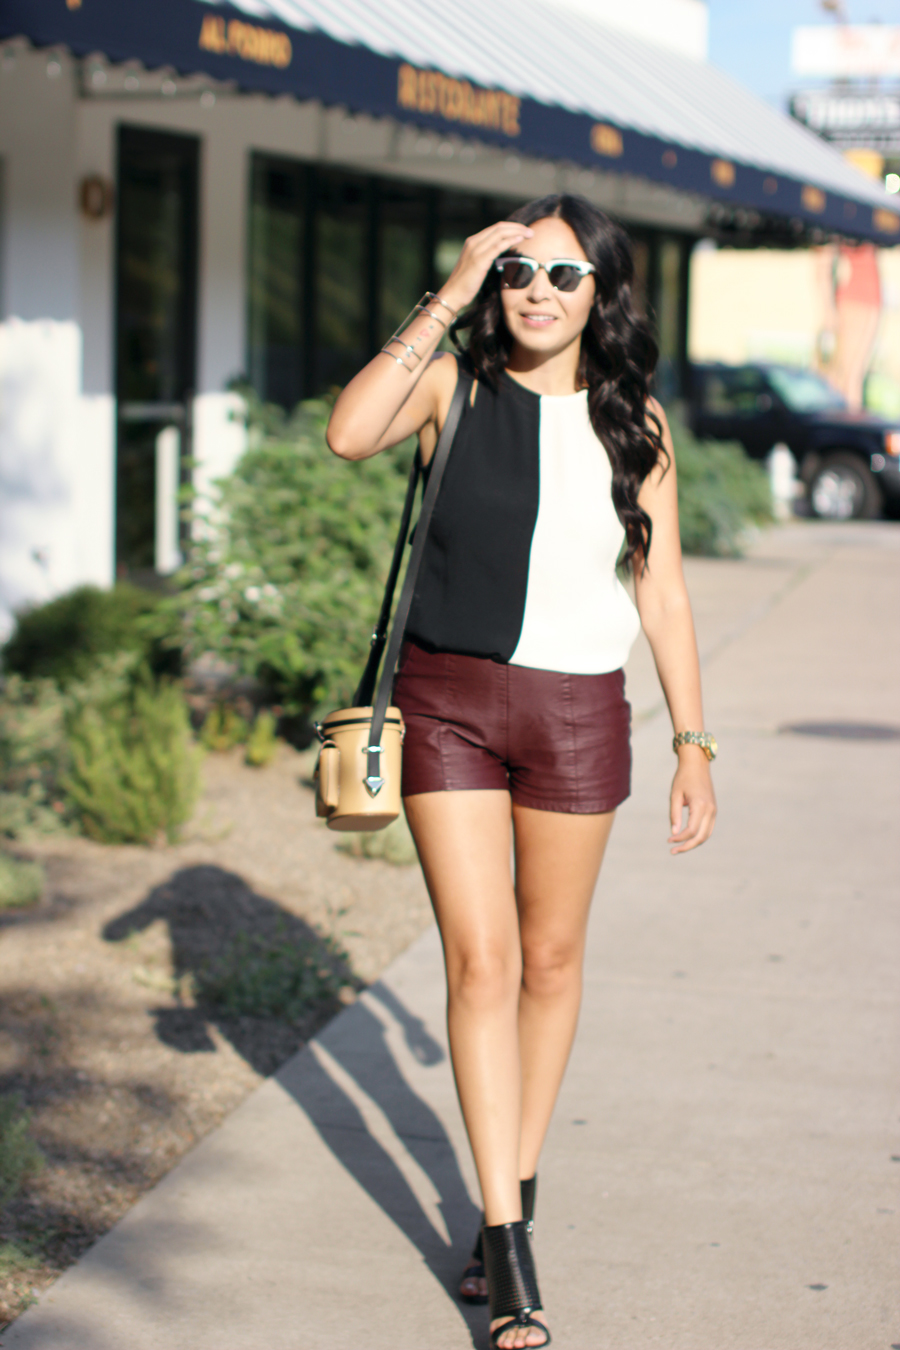 FIXIN-TO-THRILL-COLOR-BLOCK-LEATHER-SHORTS-CURLING-WAND-BLACK-WHITE-FALL-ATX-AUSTIN-STYLE-BLOG-SHIRTS-COLORS-TRENDS-FW15-TRENDY-CHIC-GLAM-FASHION-TEXAS-8